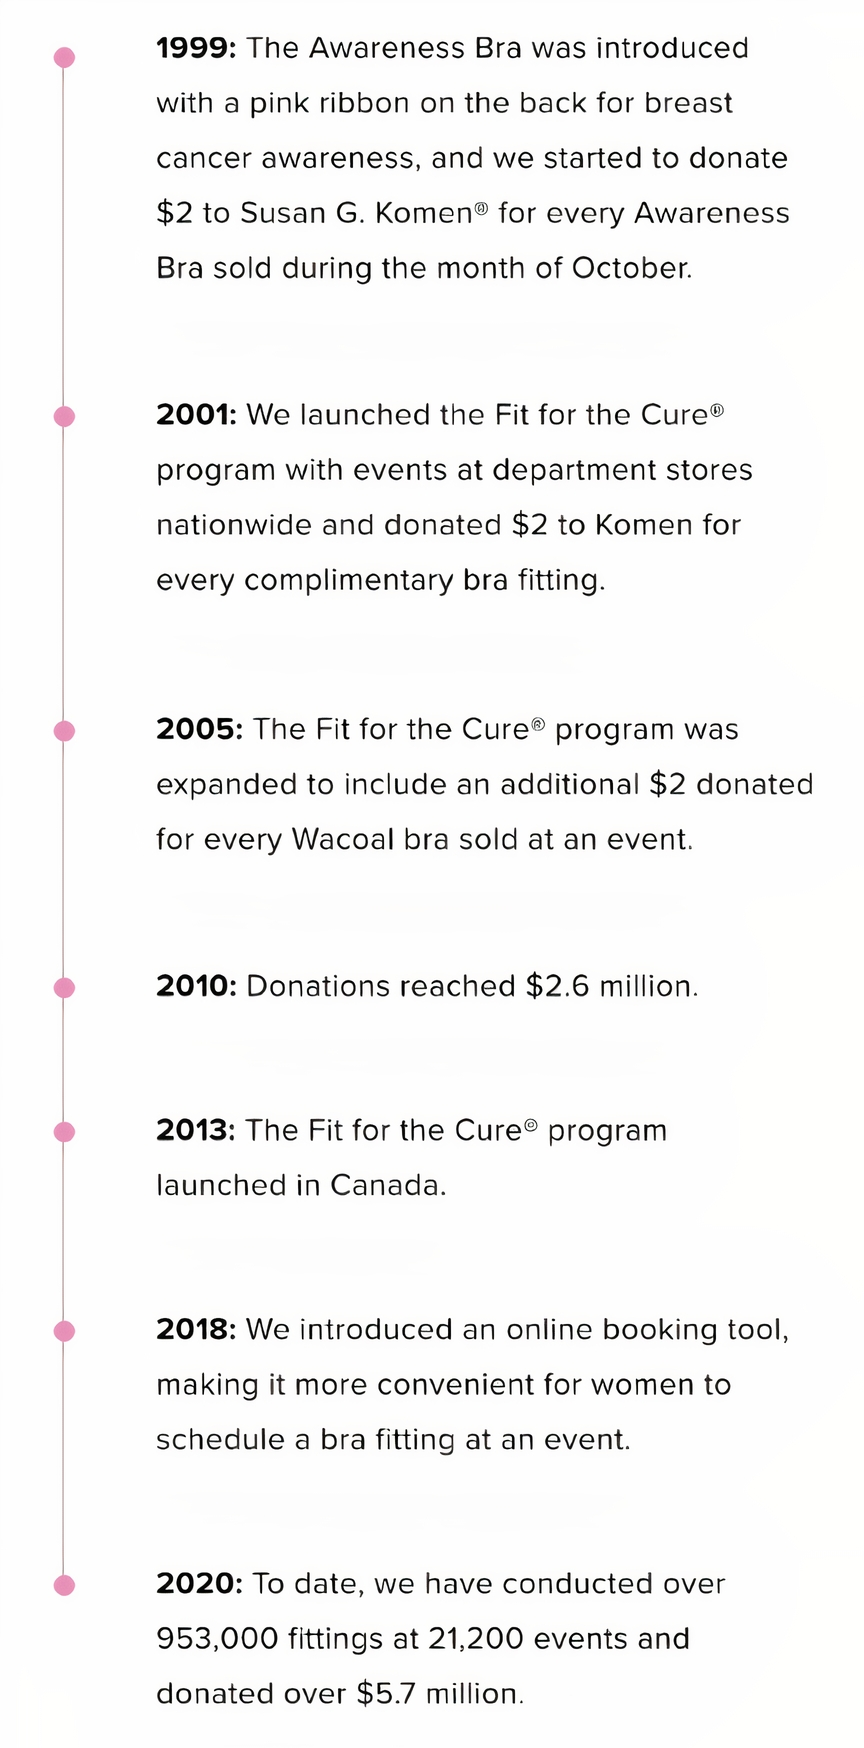 Wacoal Fit for the Cure Awareness Bra Timeline